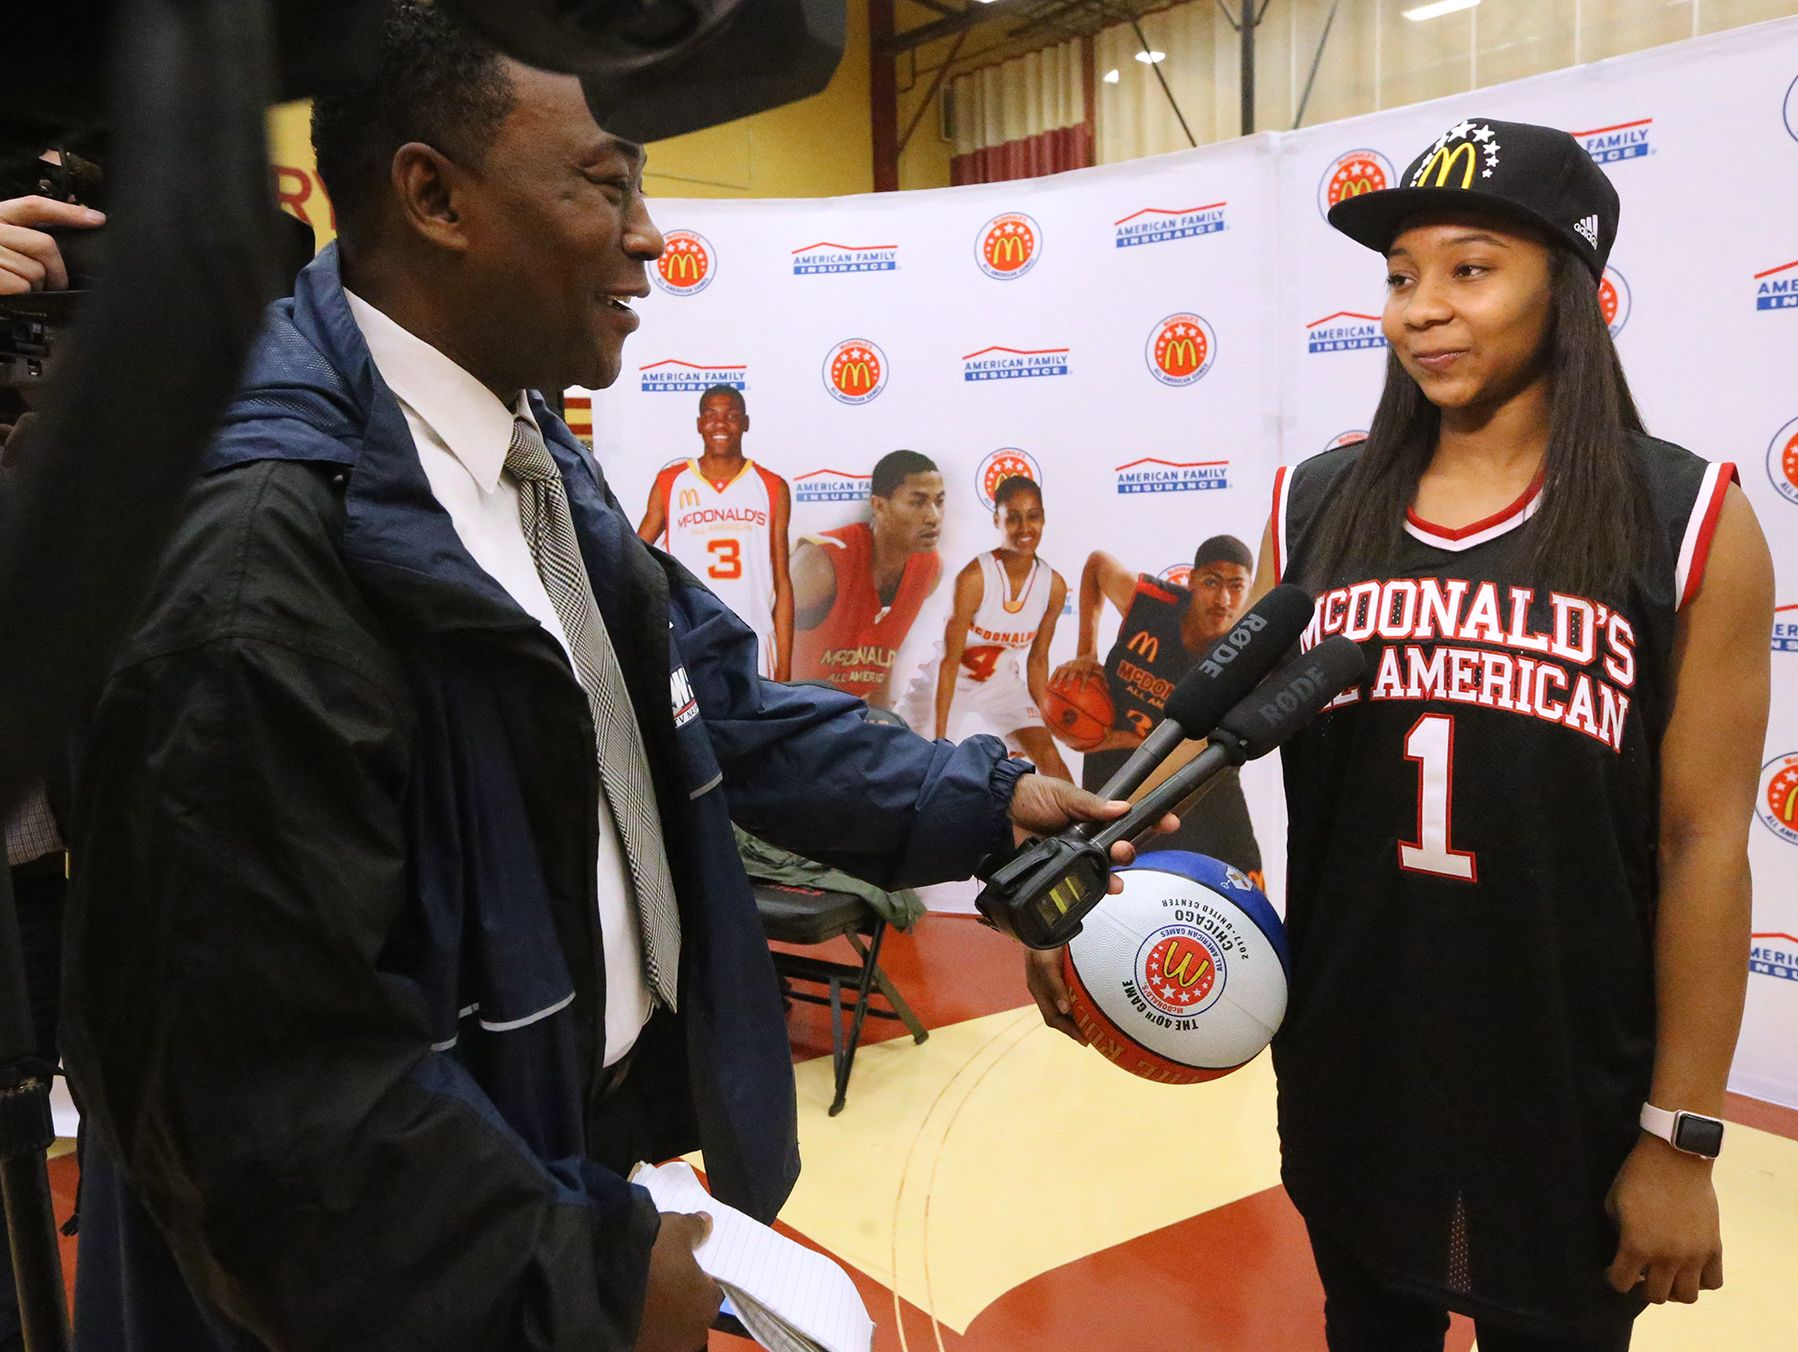 Riverdale's Anastasia Hayes talks with Larry Flowers other members of the media after being presented with her McDonald's All American jersey and hat on Tuesday, Feb. 21, 2017, at the school after being named as part of the 40th All American team.